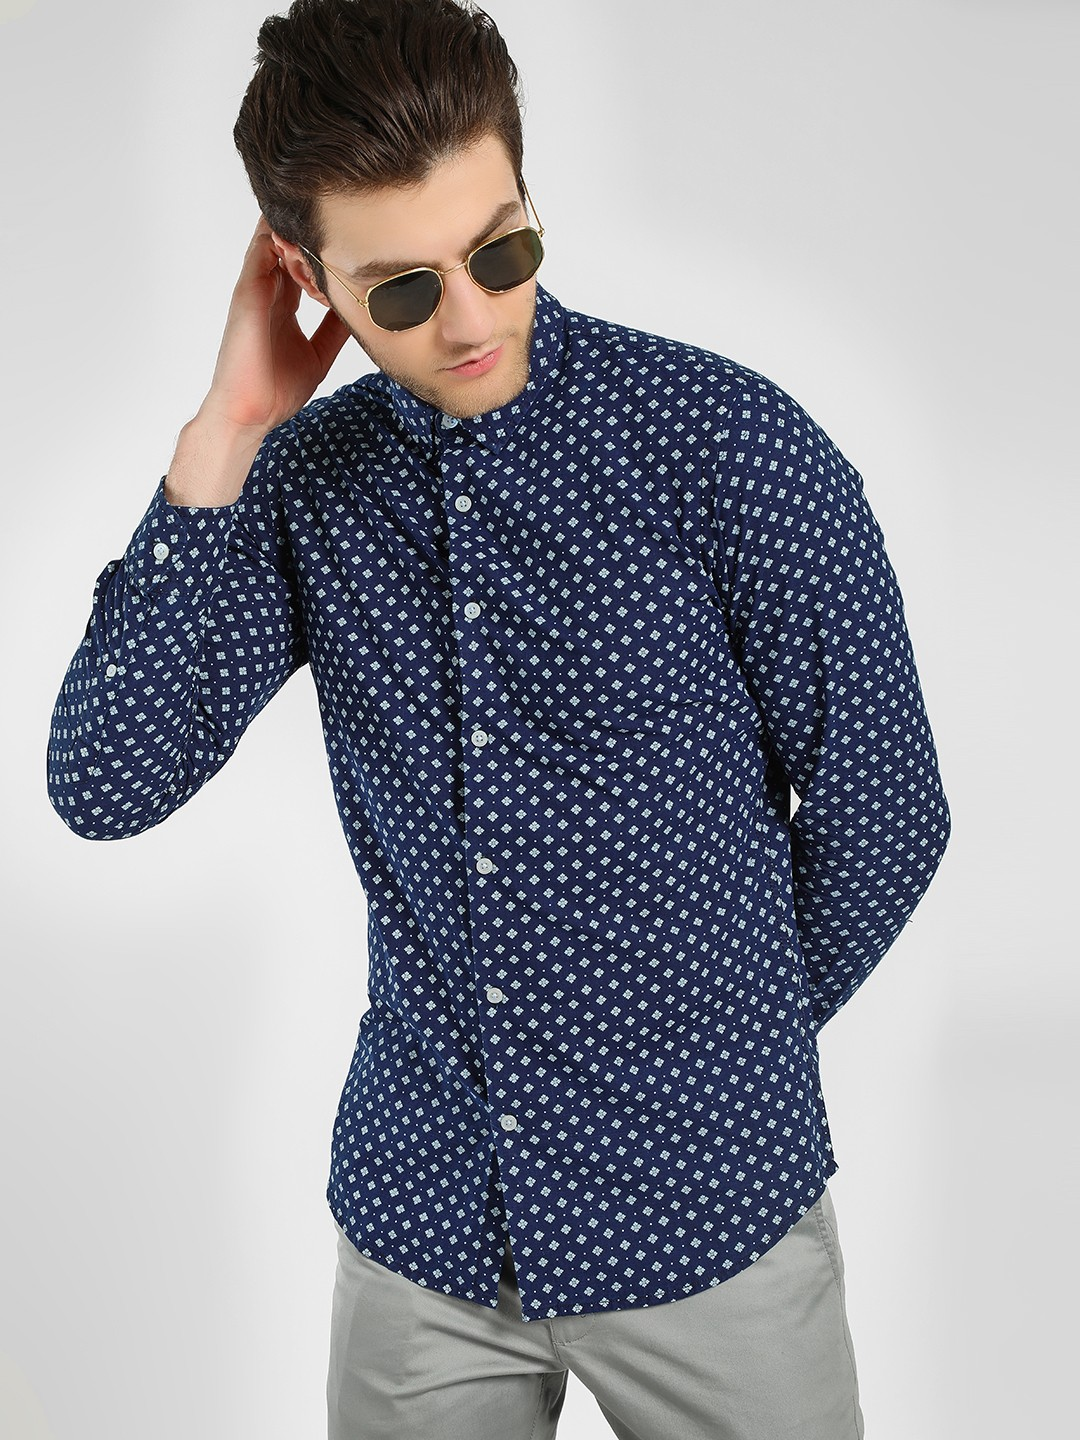 Adamo London Blue Moroccan Polka Dot Print Shirt 1